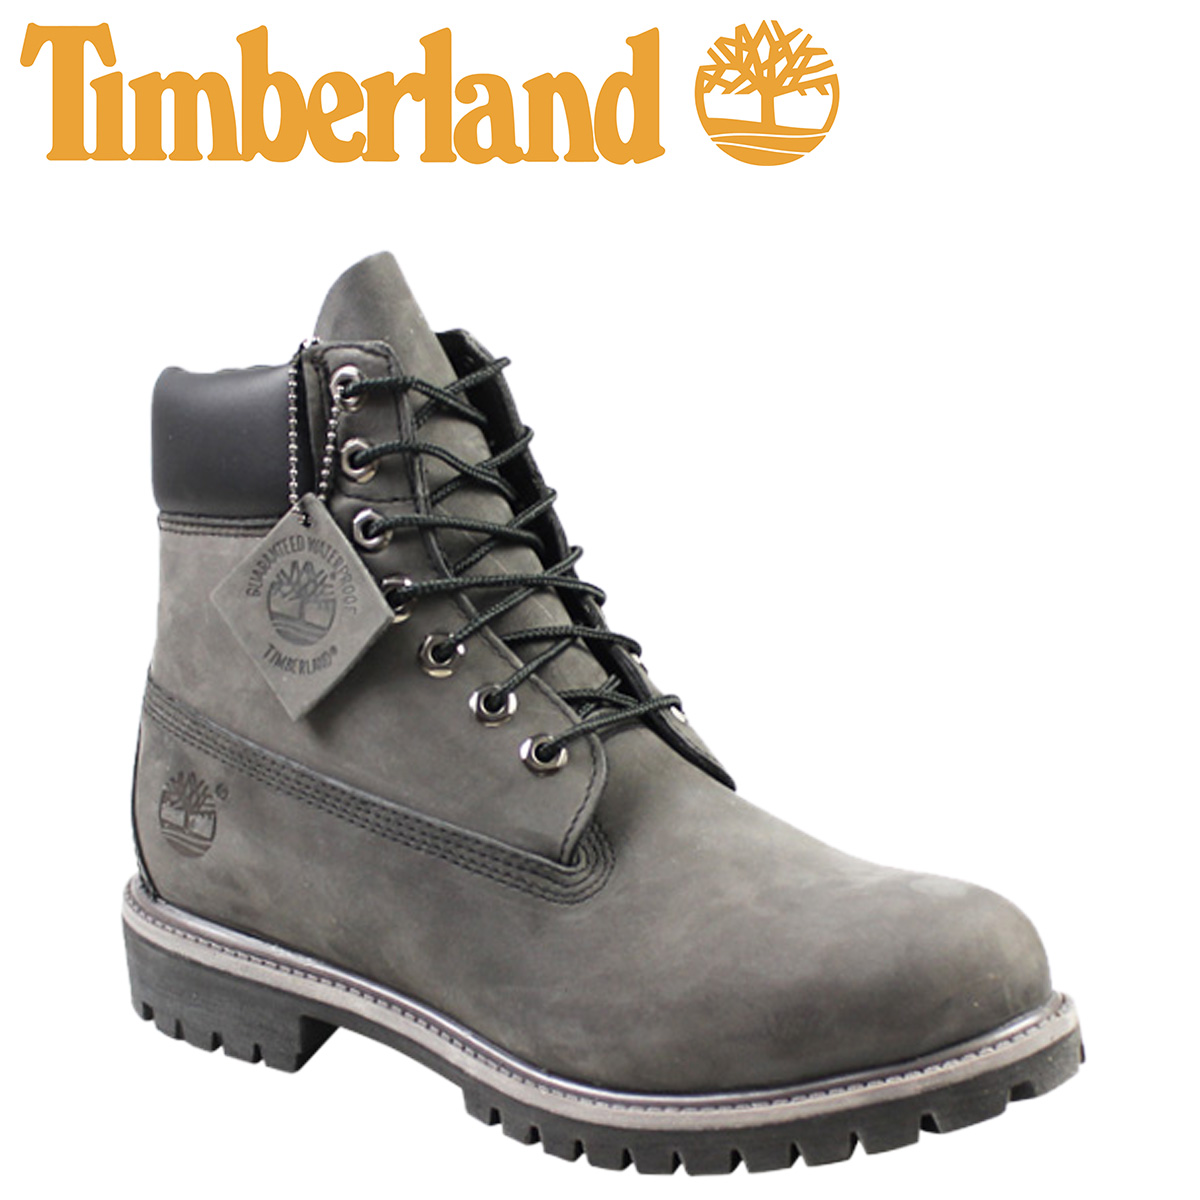 Timberland Menns Boot 6 Tommers Premium 6609a Grå Sort BtY59JY